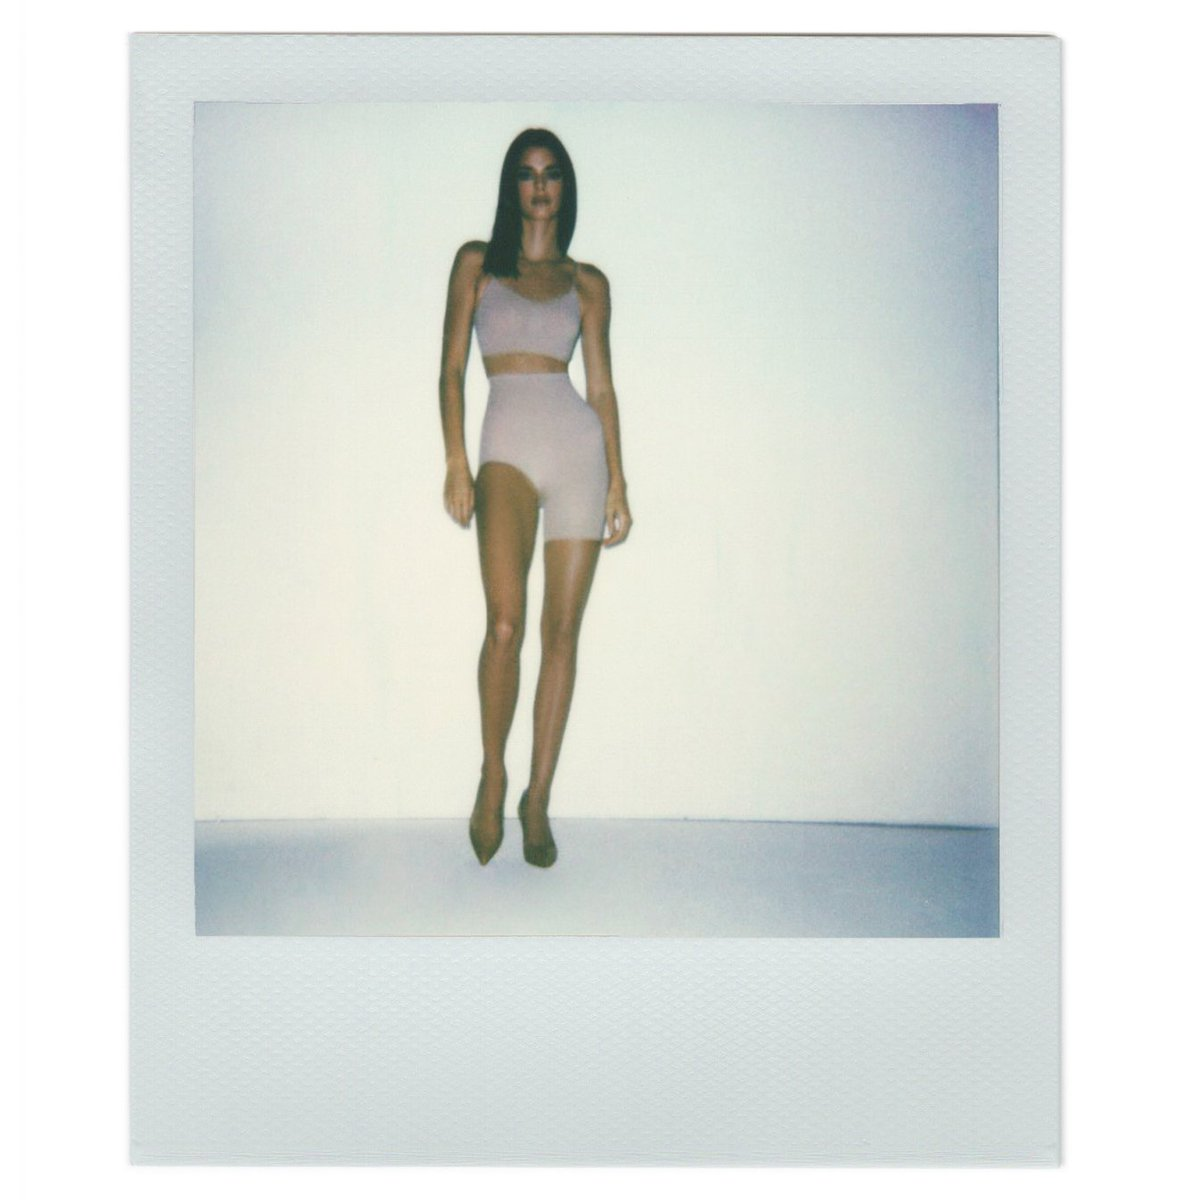 Kendall Jenner (@KendallJenner ) wears the Solution Short no. 2 ($42) in Clay. Available now in select sizes and colors at  http://SKIMS.COM  . Photo: #VanessaBeecroft